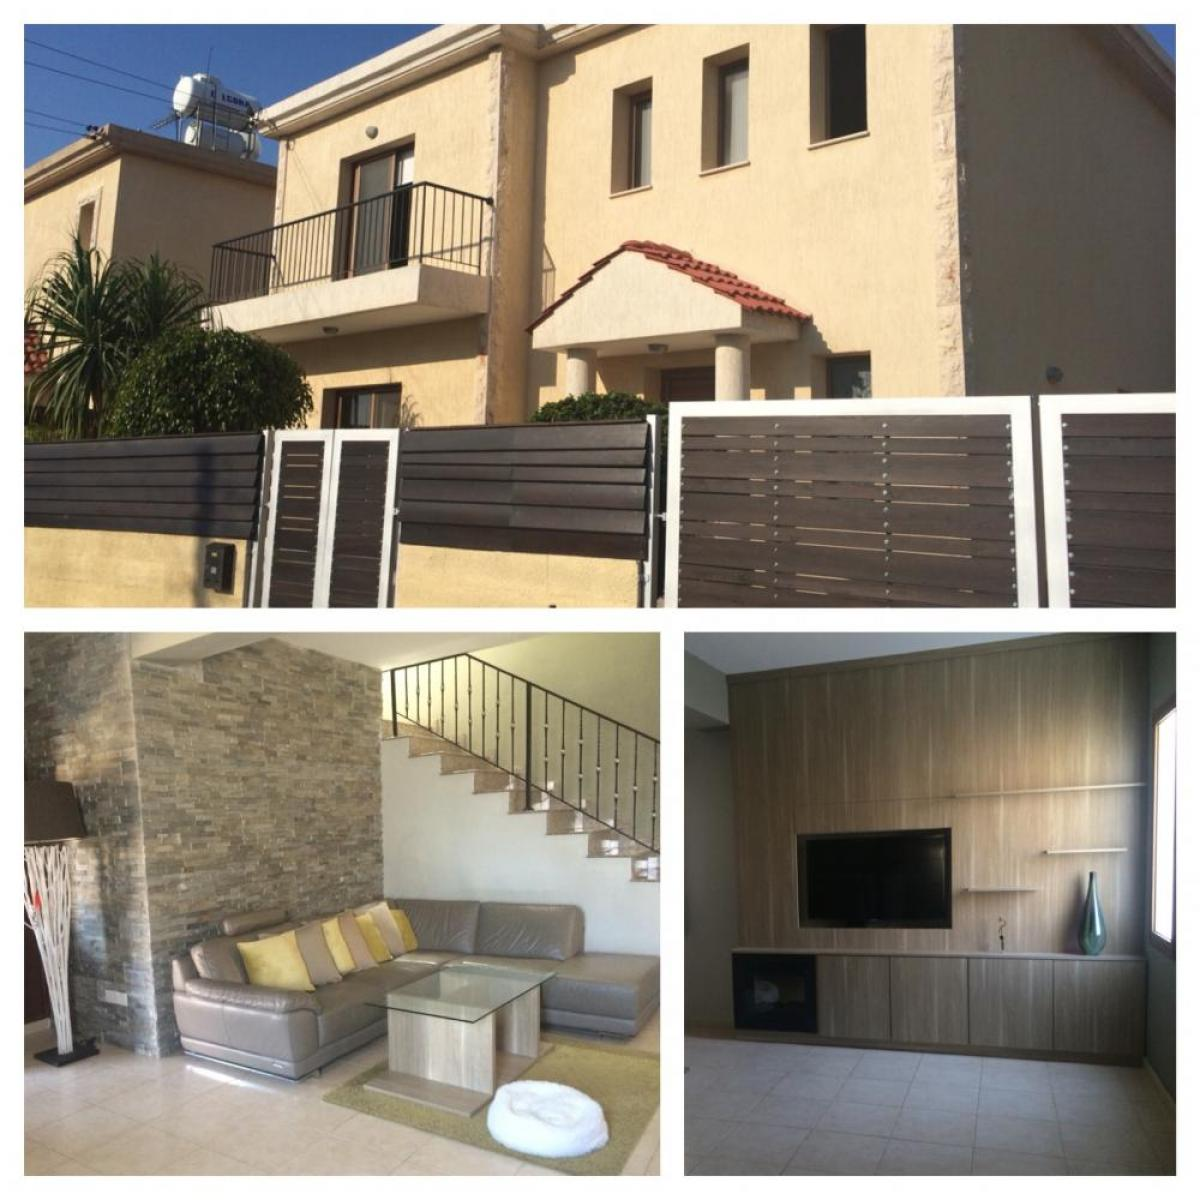 Property listed For Sale in Pano Polemidia, Cyprus